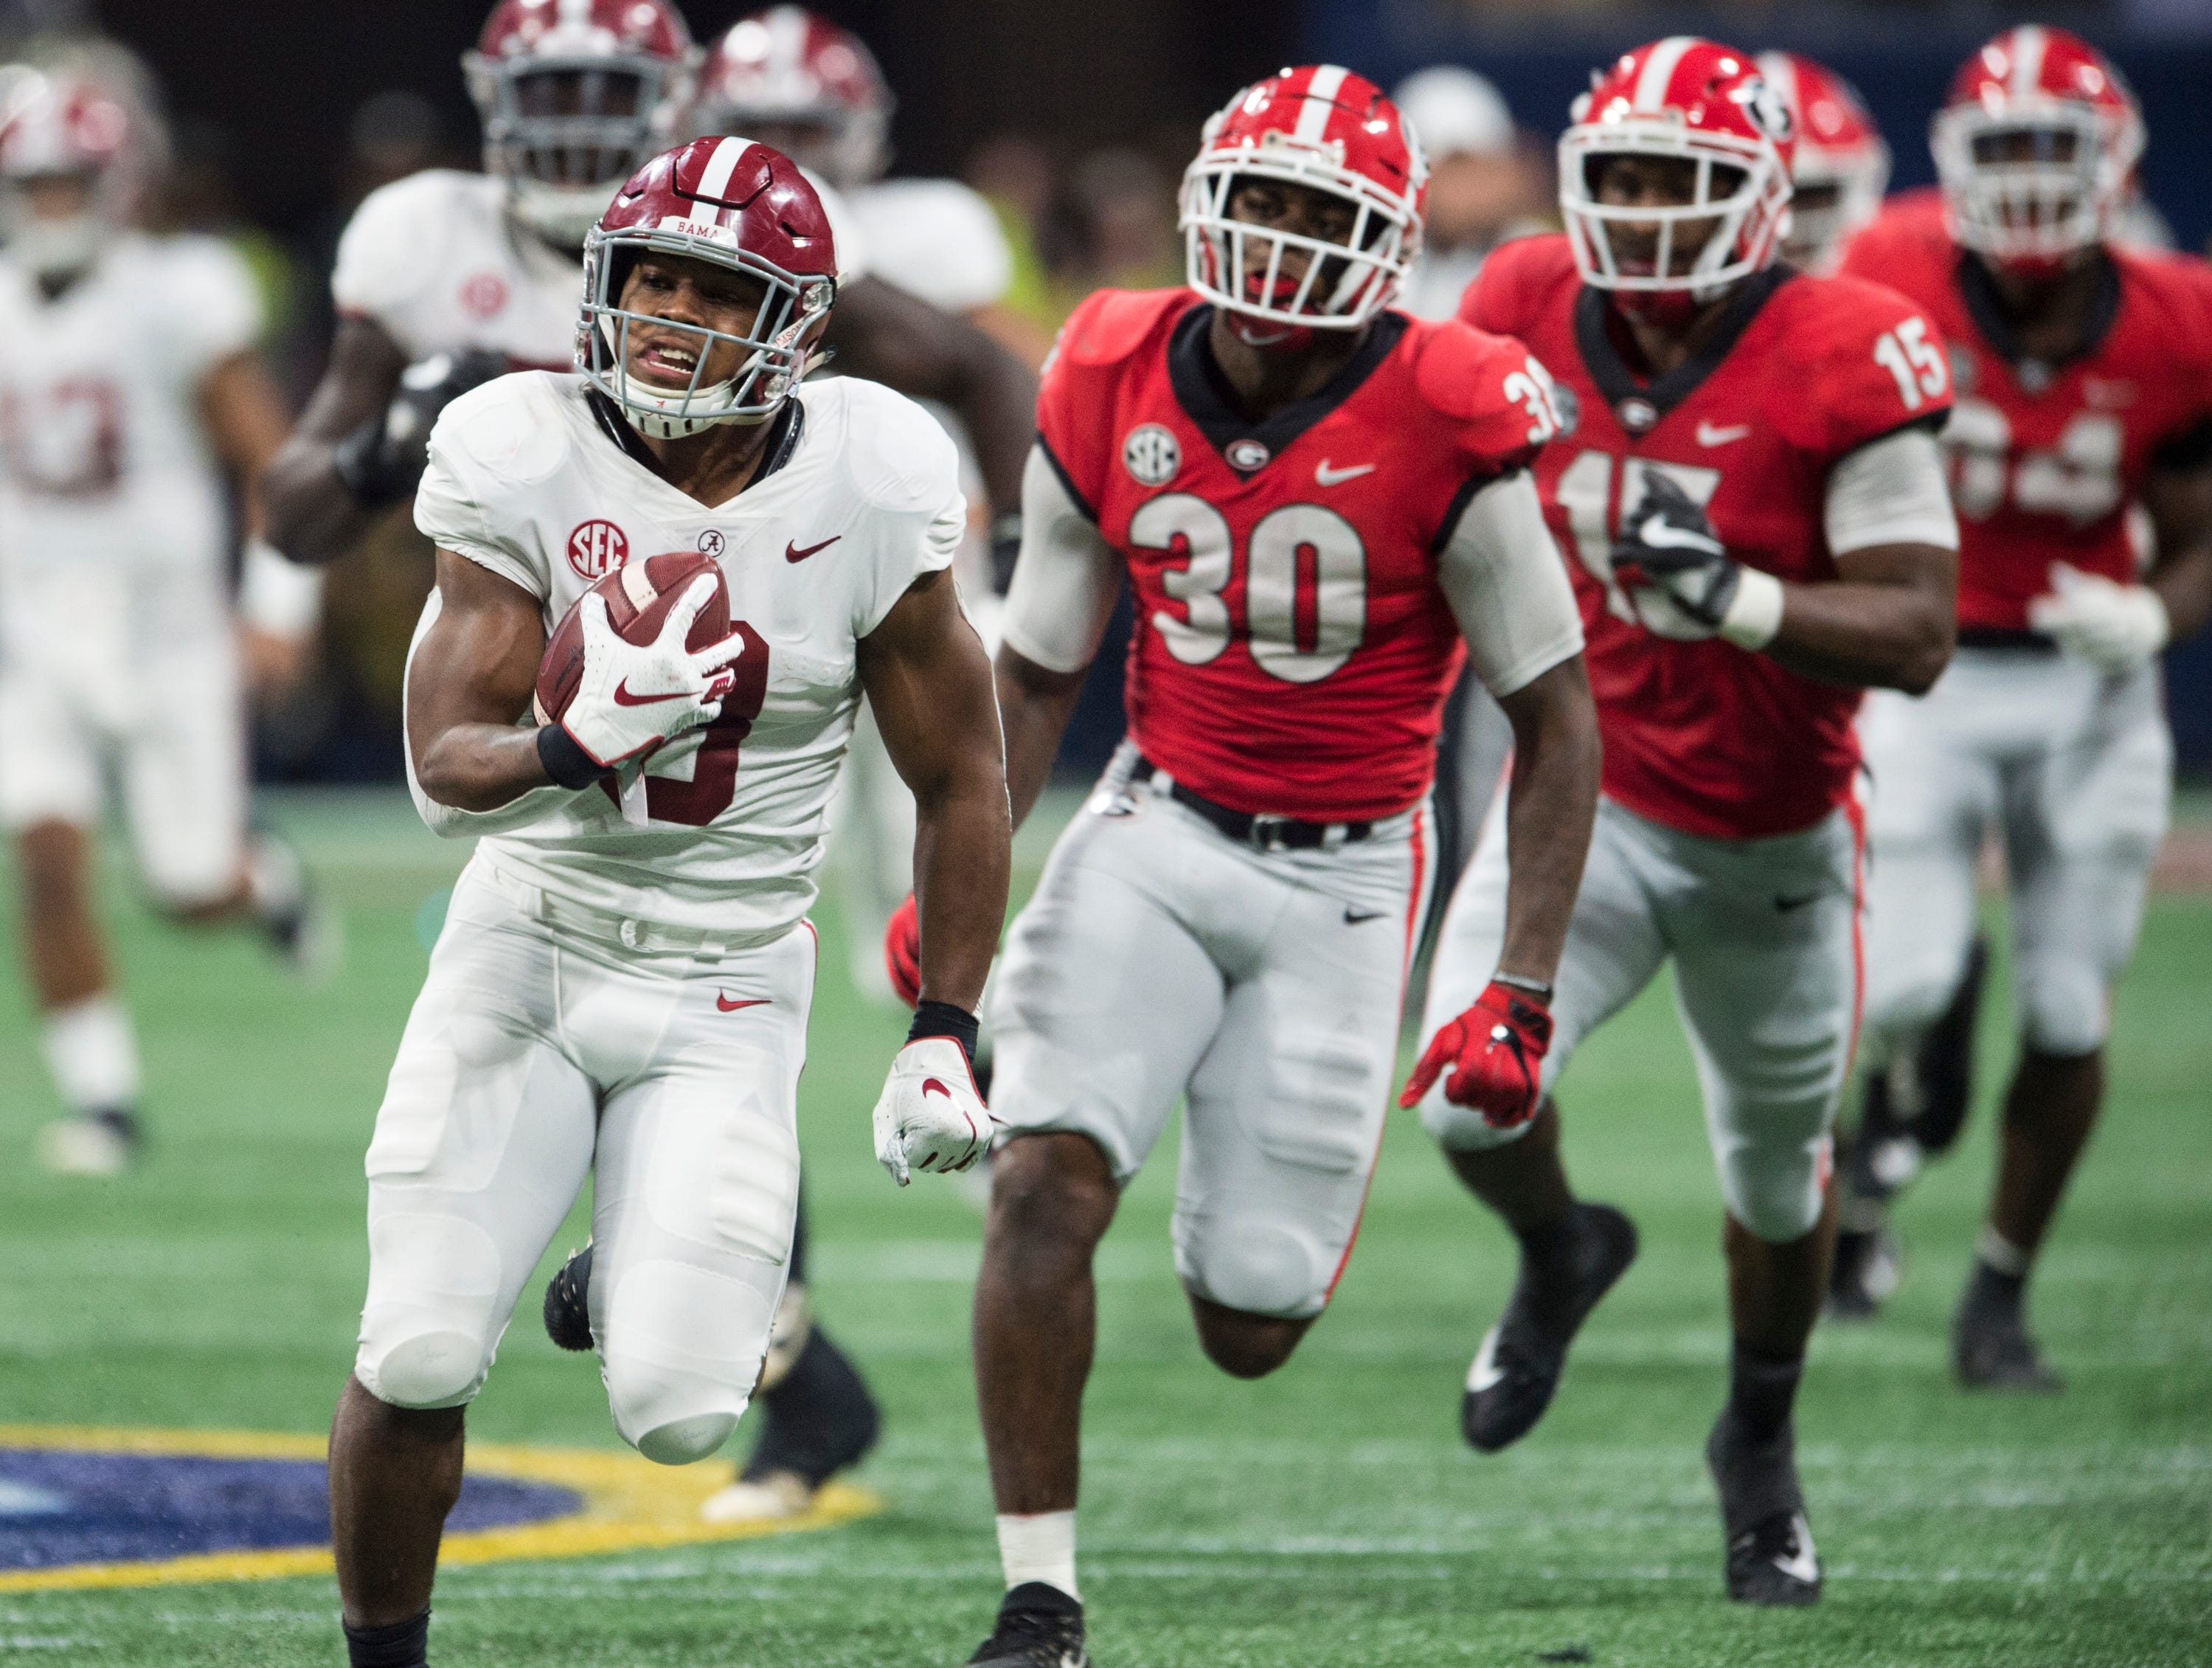 Alabama running back Josh Jacobs (8) breaks a big run during the SEC Championship game at Mercedes-Benz Stadium in Atlanta, Ga., on Saturday Dec. 1, 2018. Georgia leads Alabama 21-14 at halftime.